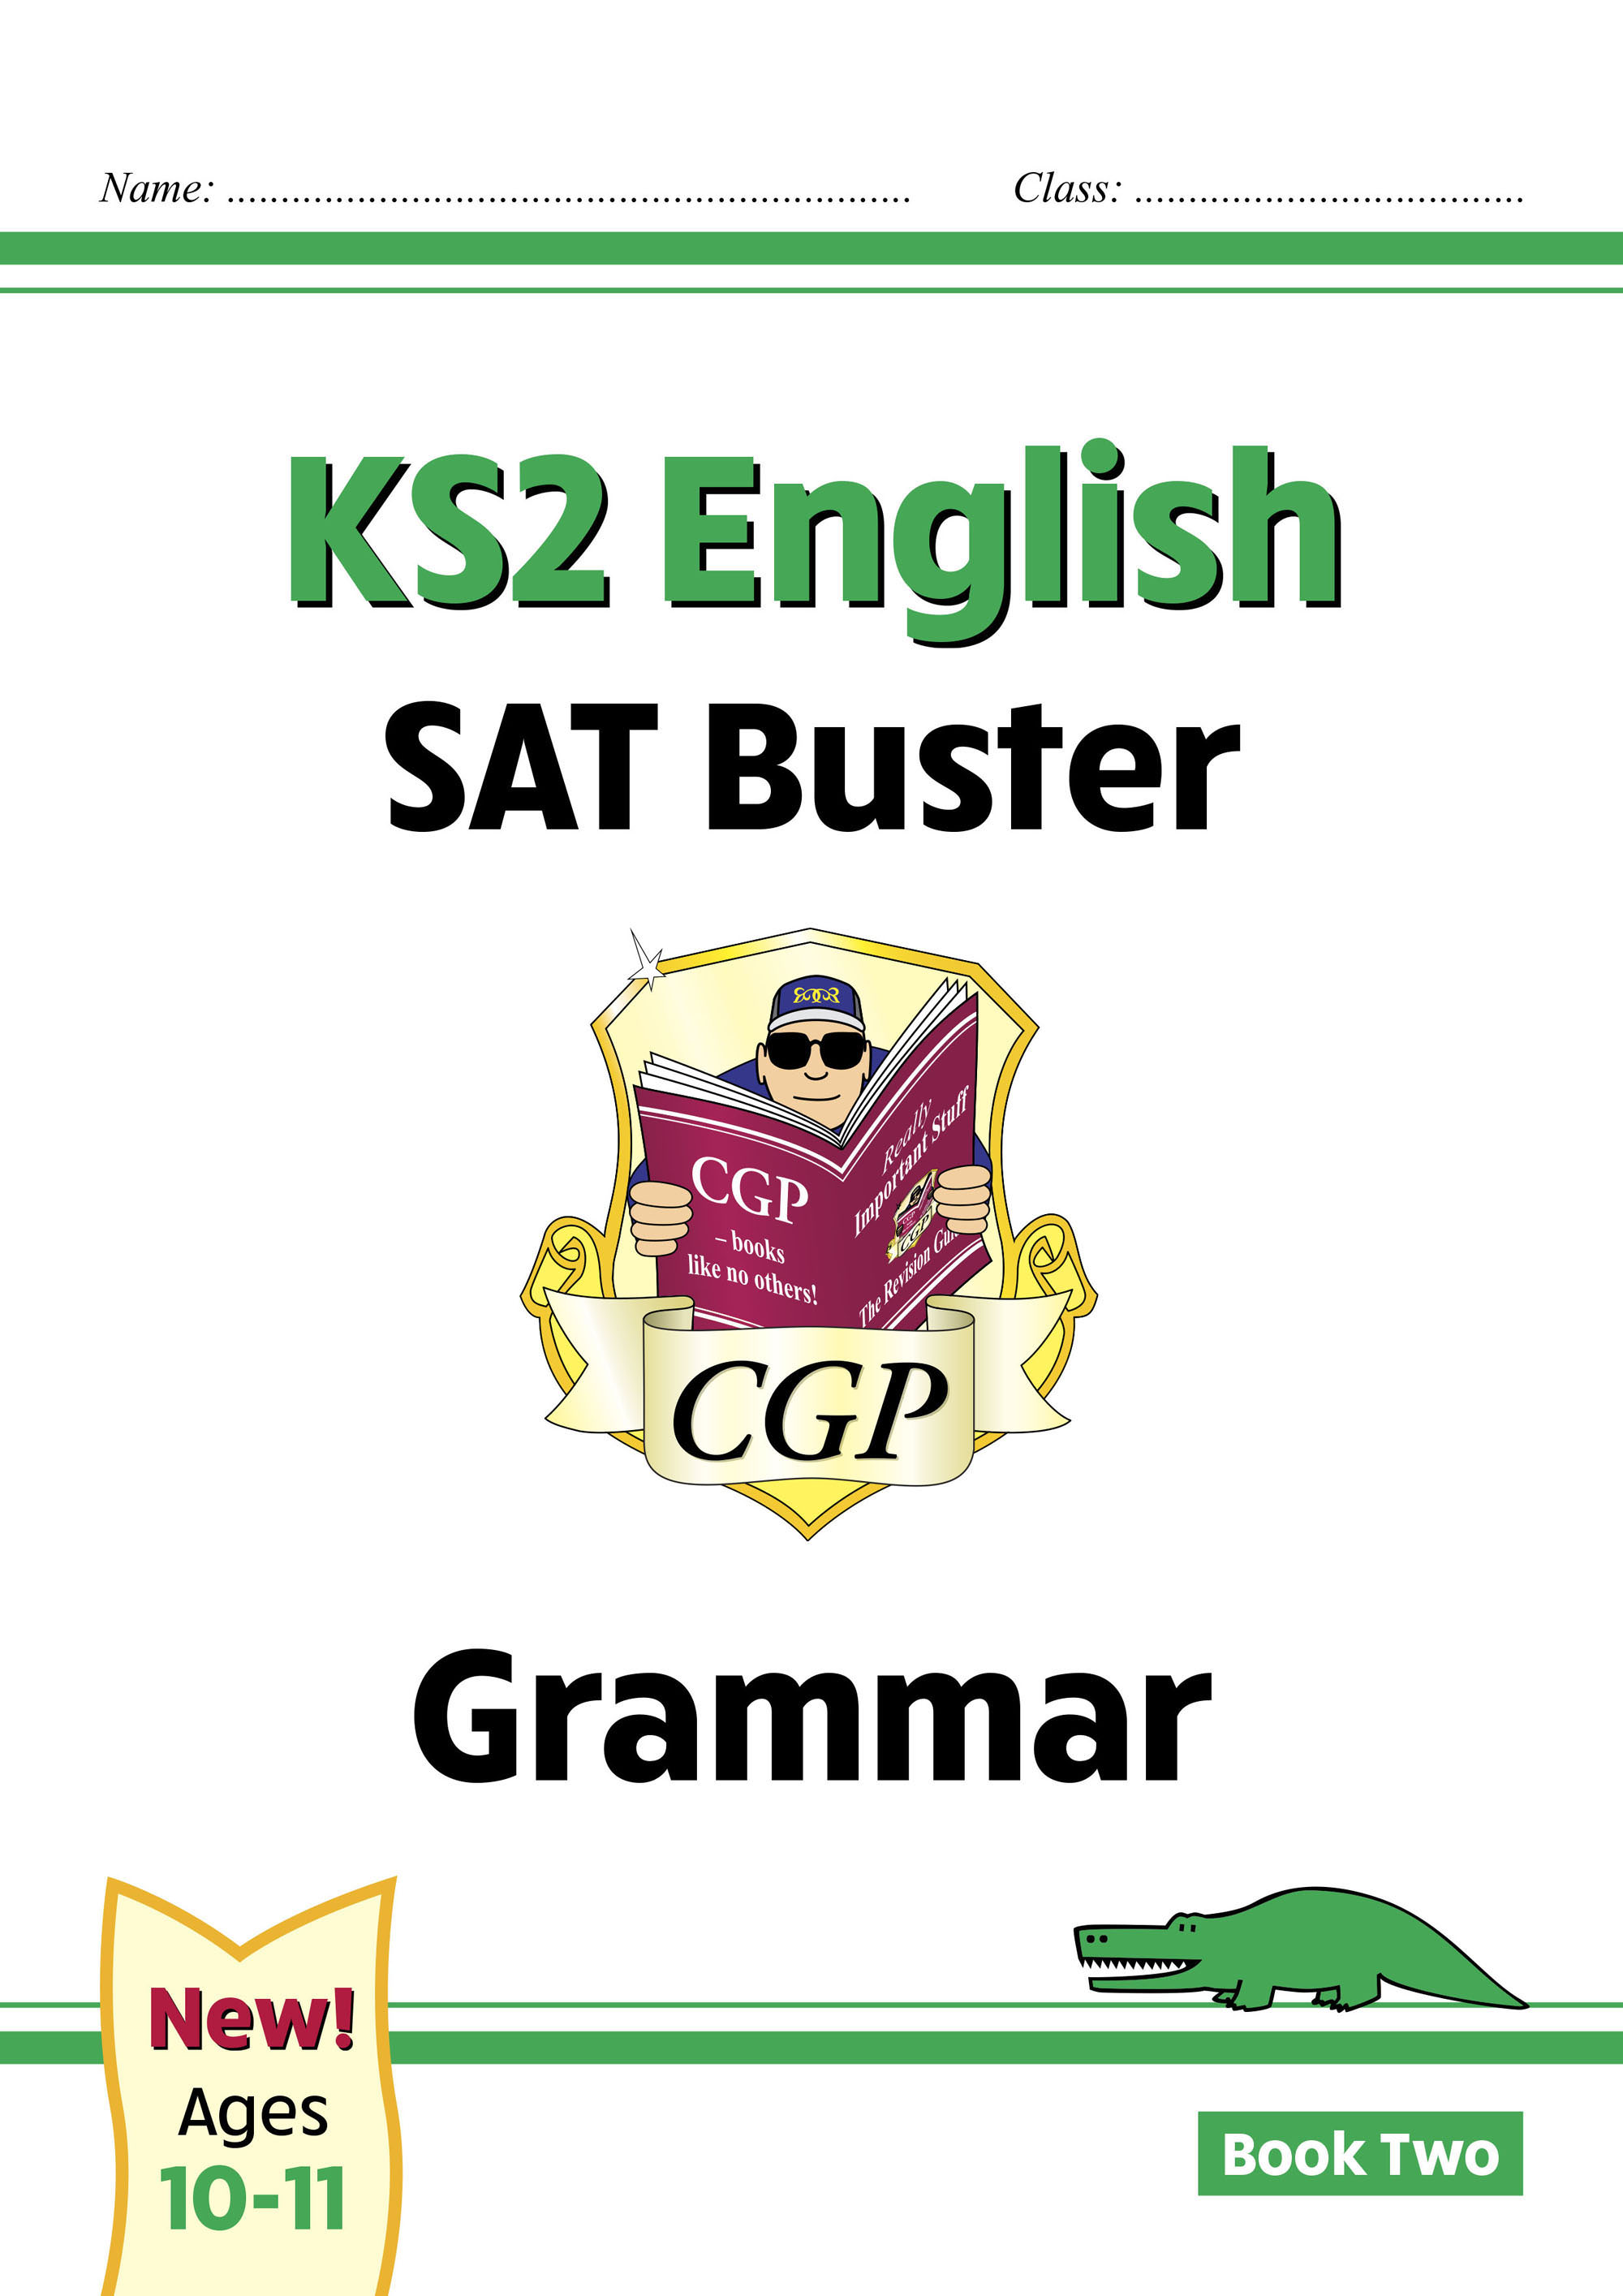 E6G223DK - New KS2 English SAT Buster: Grammar - Book 2 (for the 2021 tests)